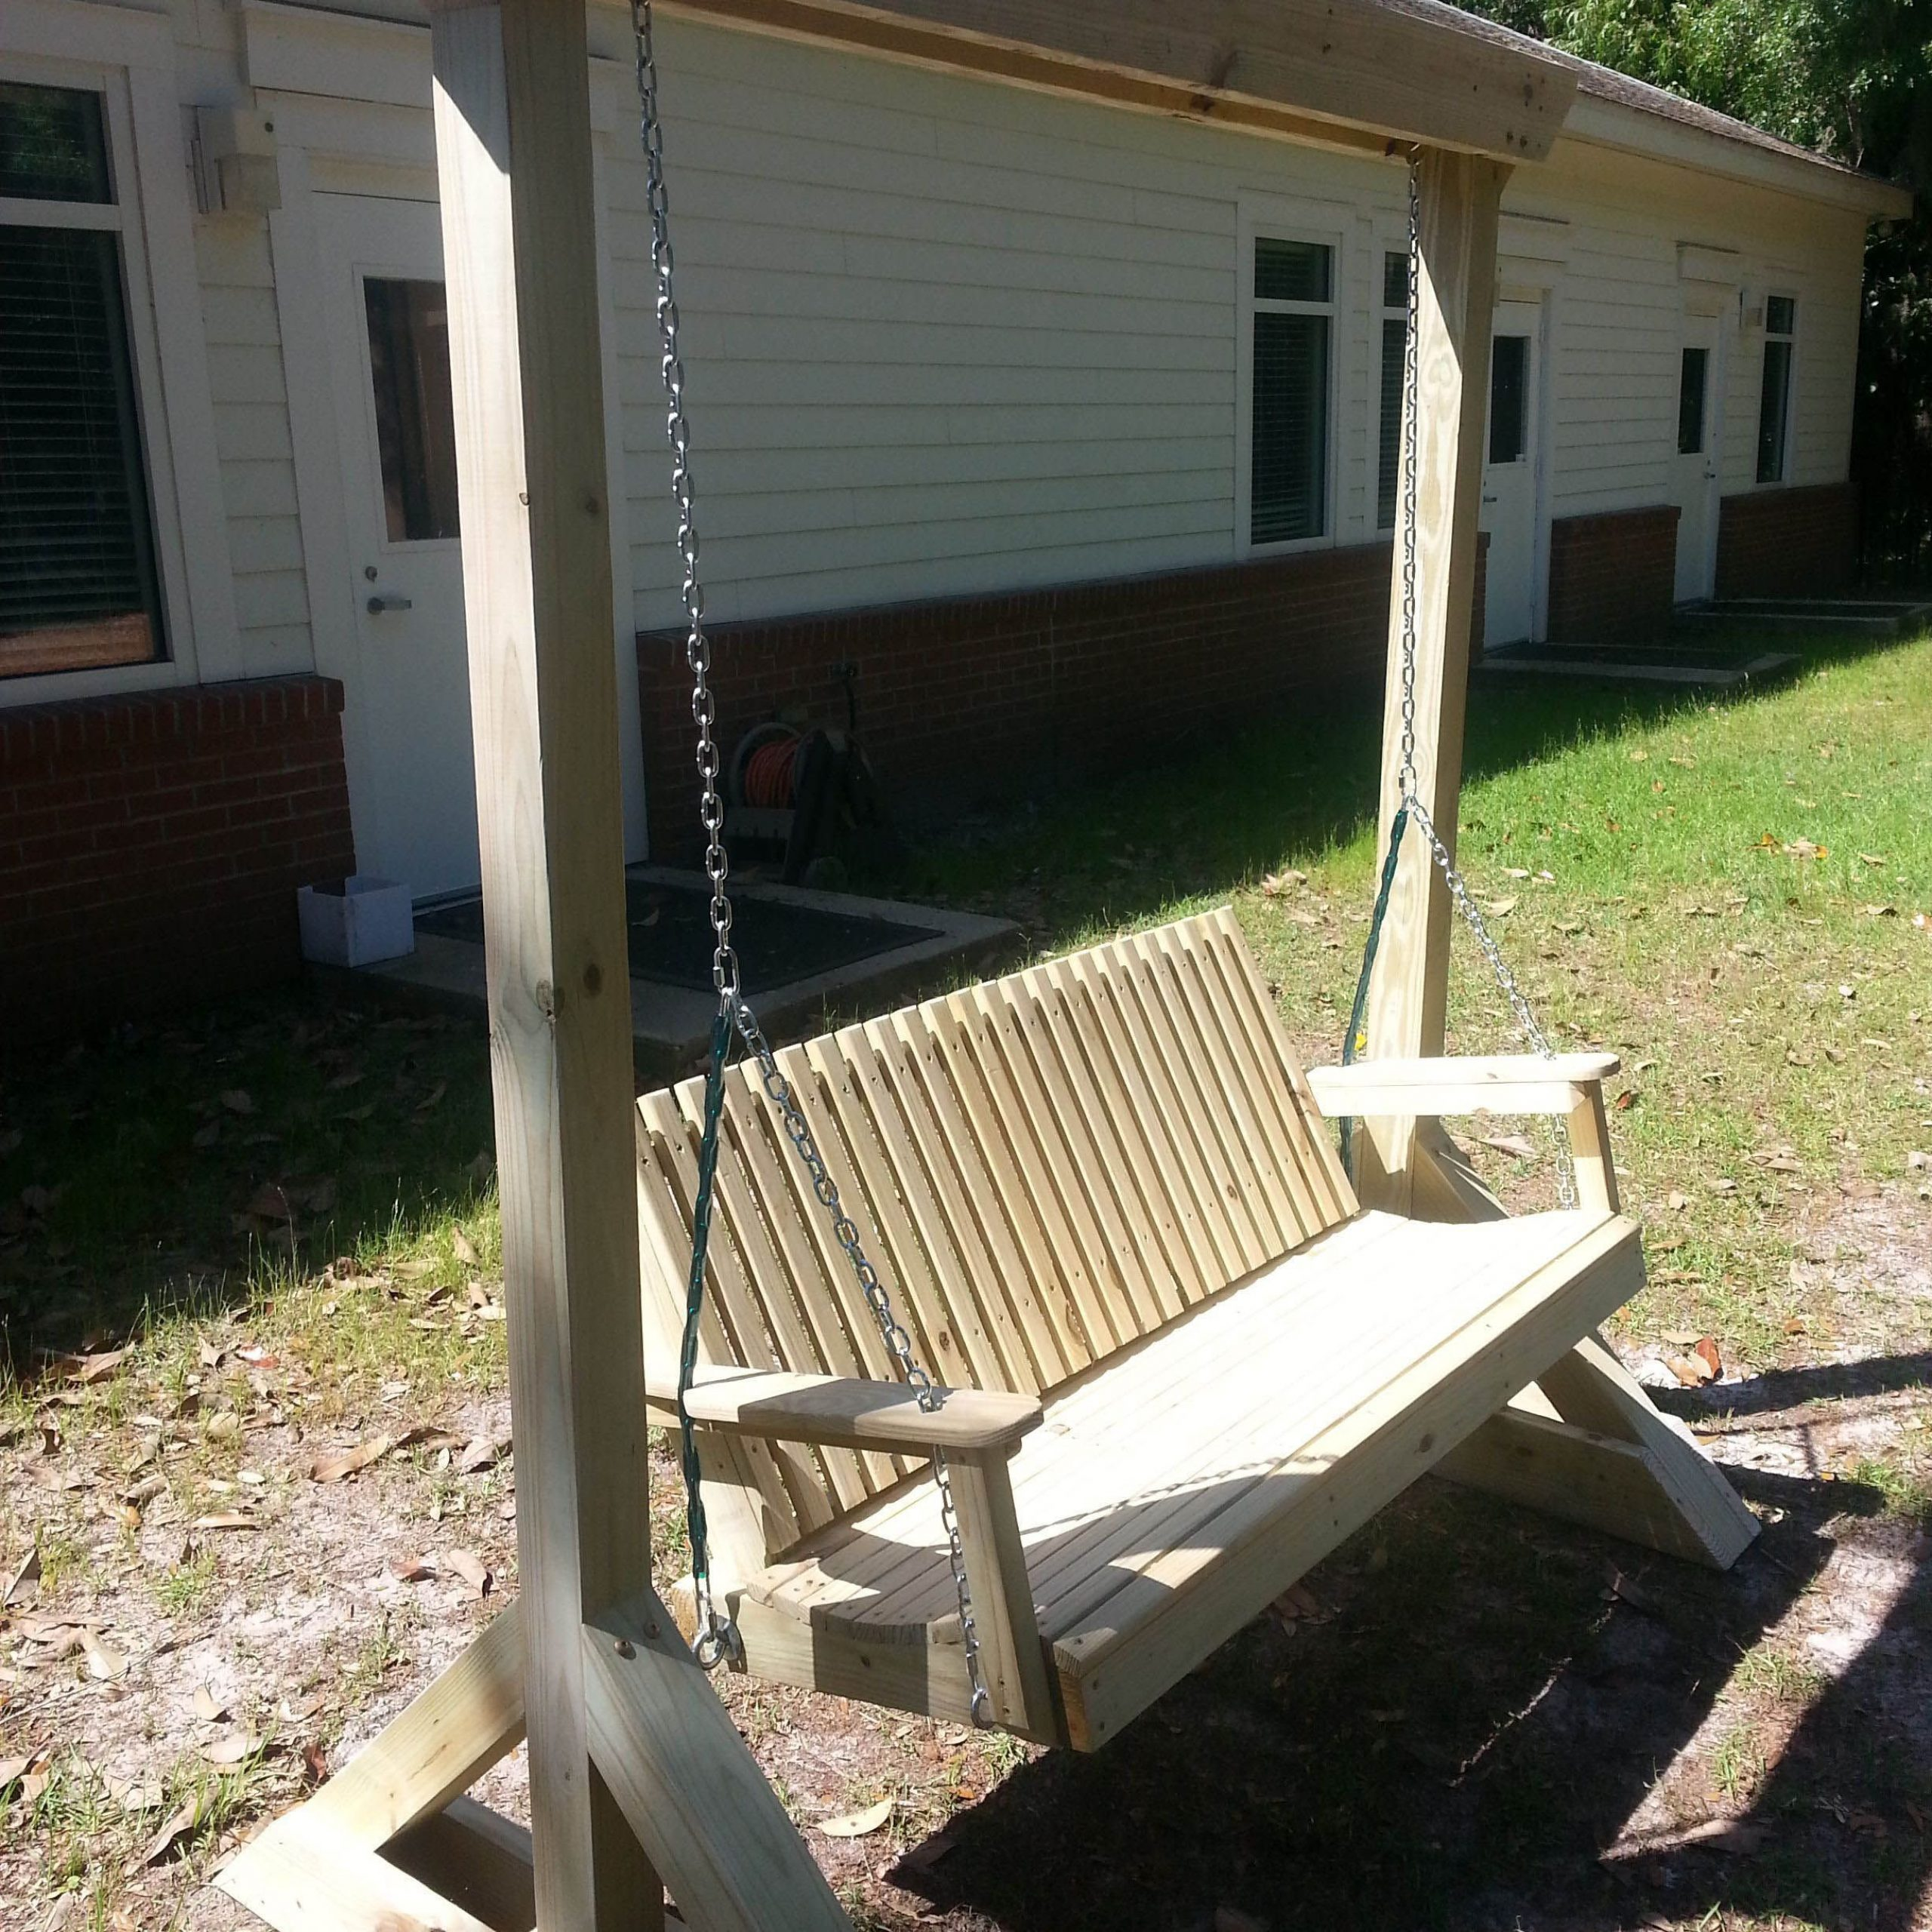 Free Diy Porch Swing Plans & Ideas To Chill In Your Front With Widely Used Porch Swings (Gallery 5 of 30)